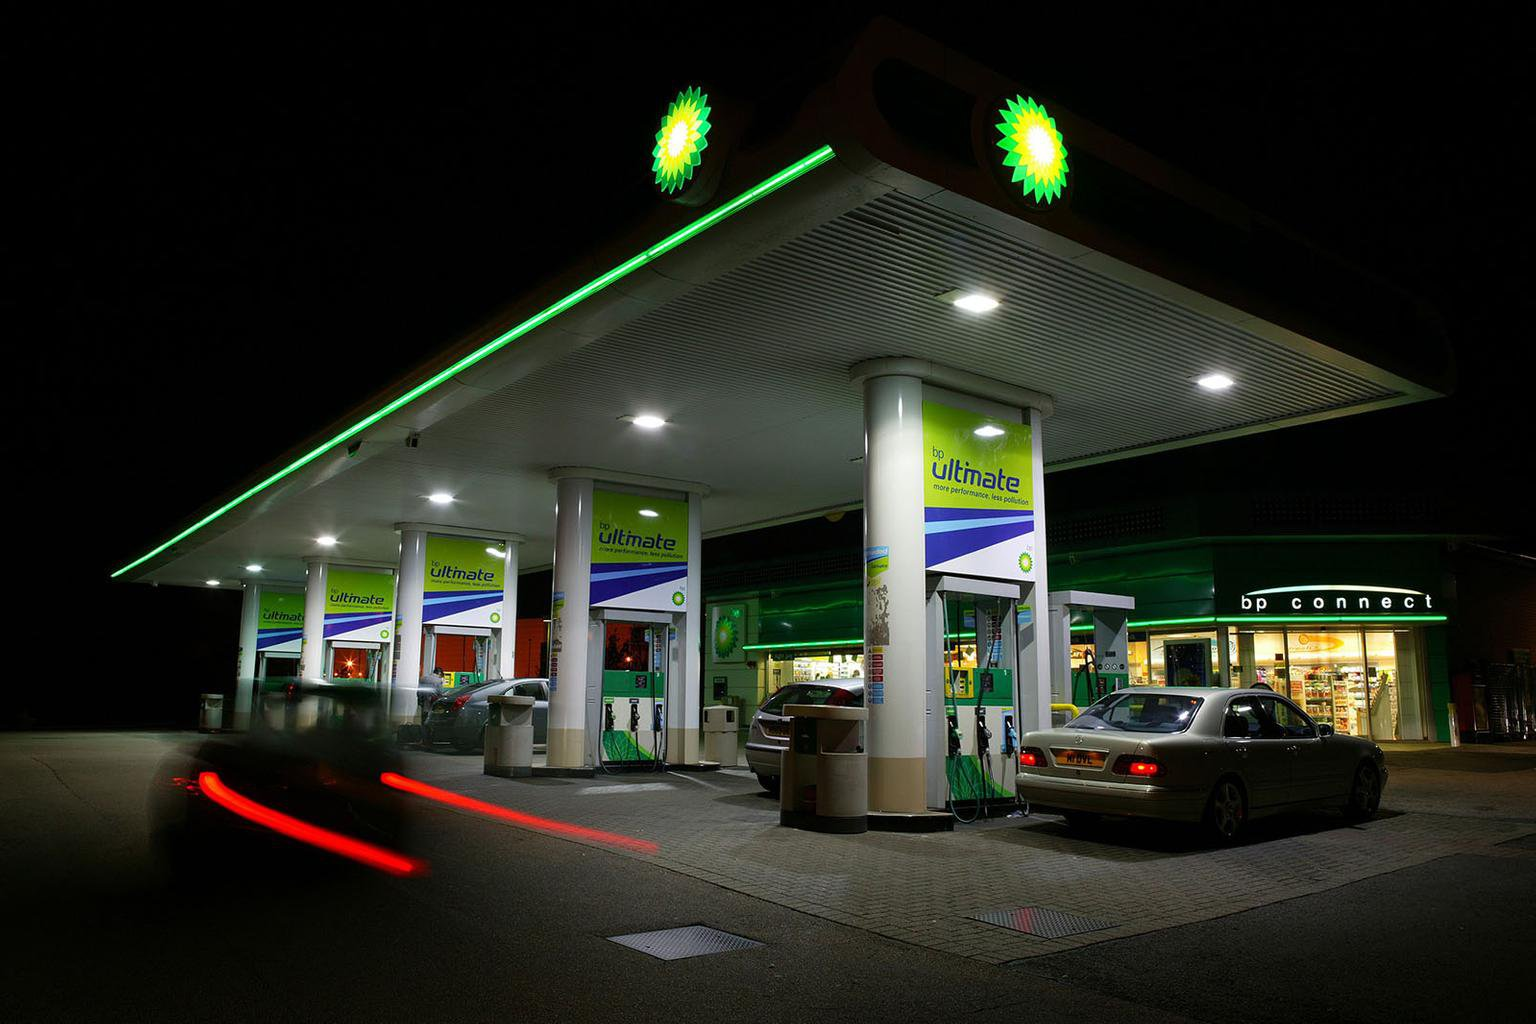 UK fuel prices set to rise